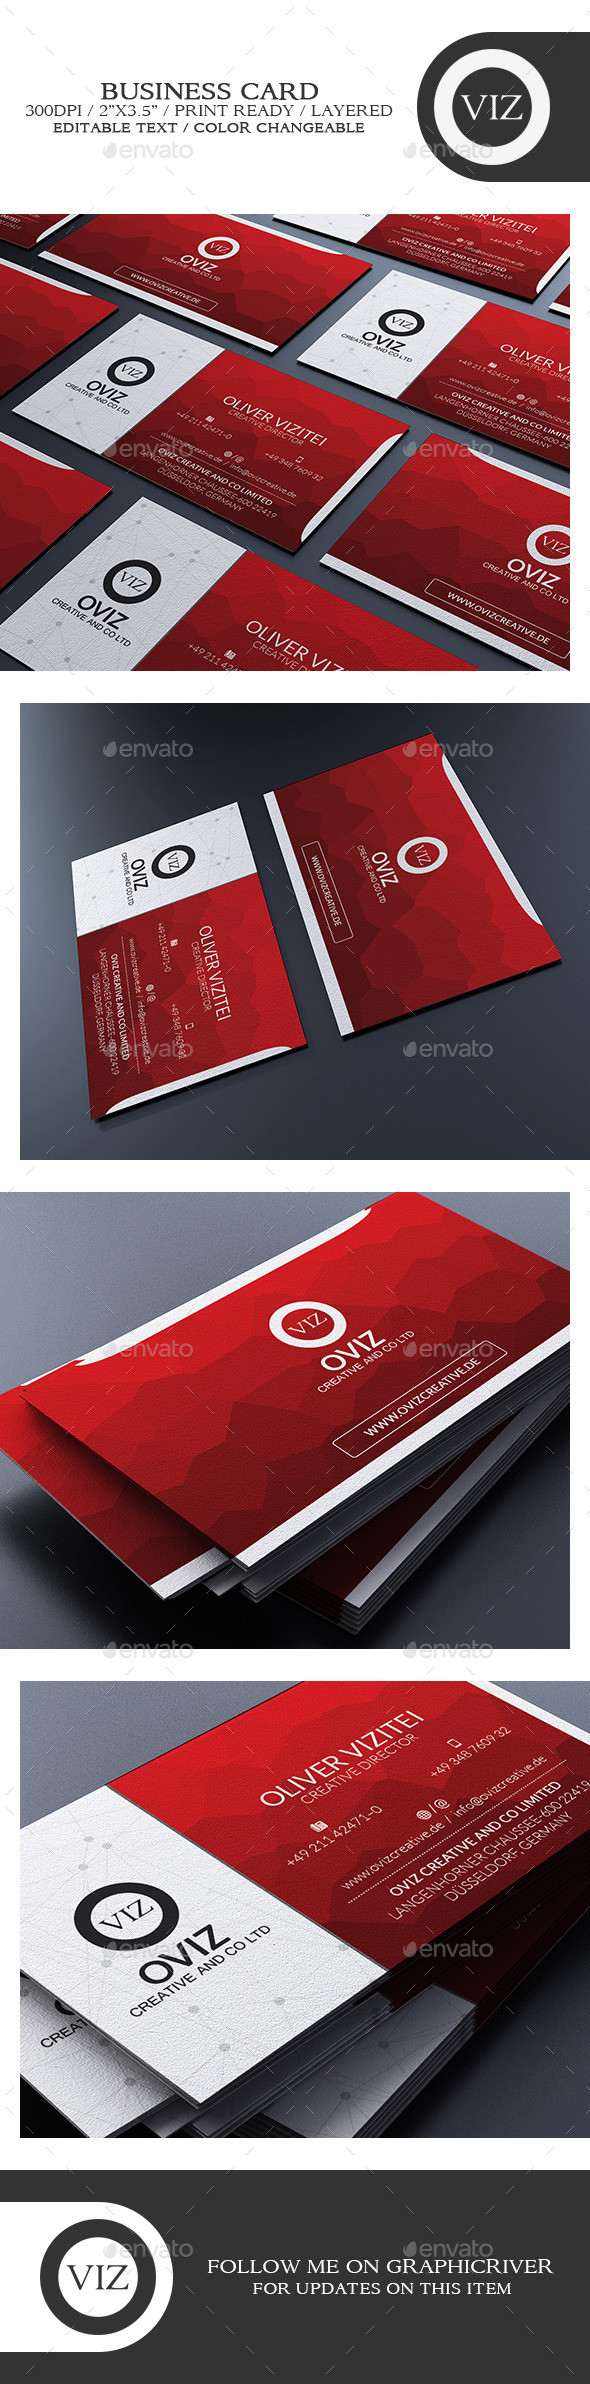 Corporate 20business 20card